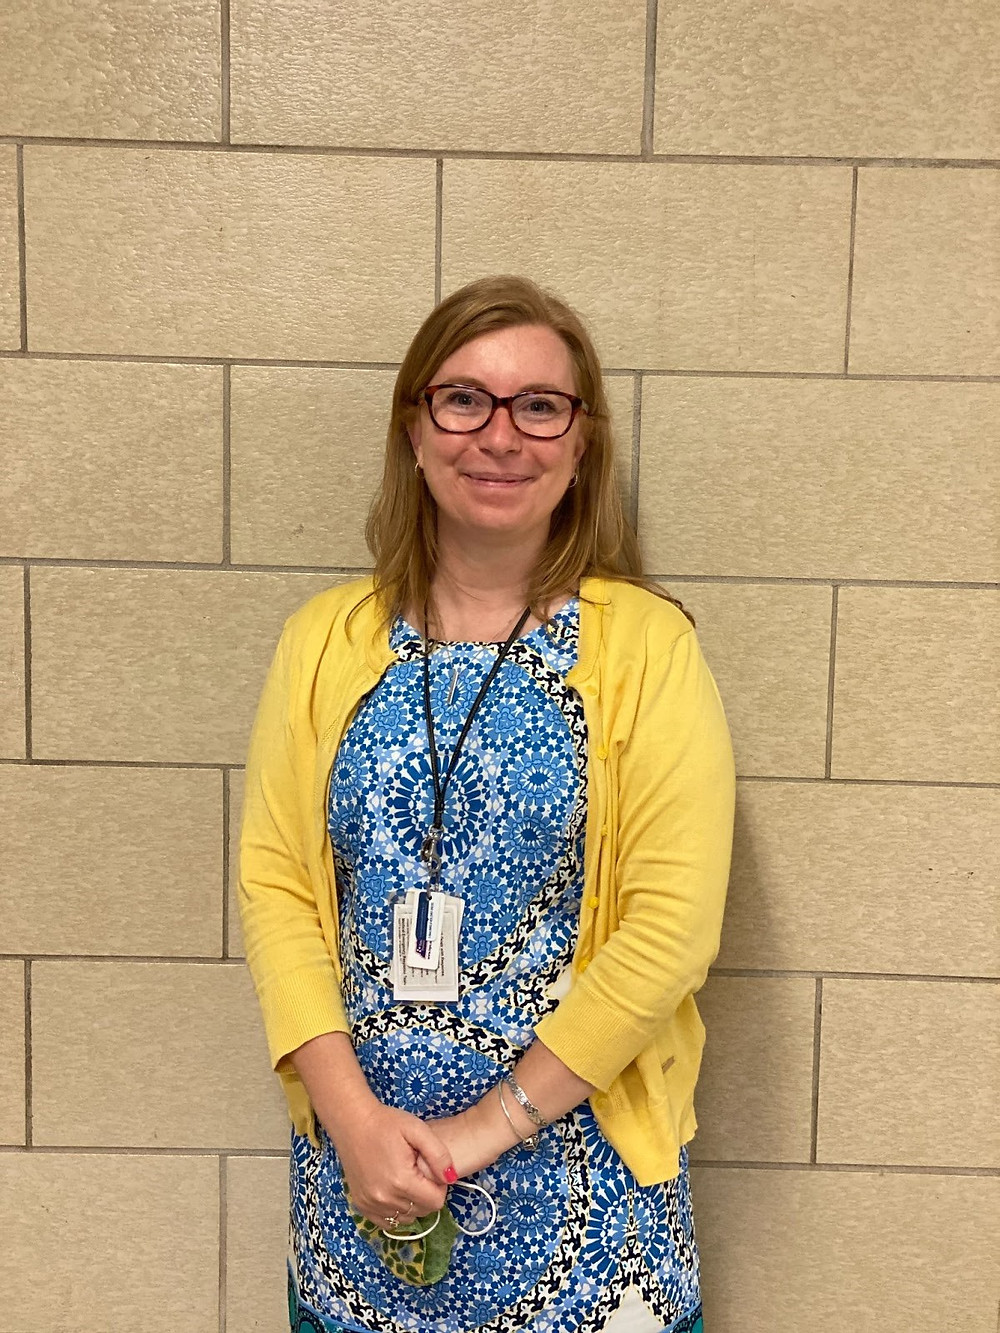 Ms, Tammy Ripley, applicant selected to participate in the Tennessee State Library and Archives in-person Summer Teacher Institute.